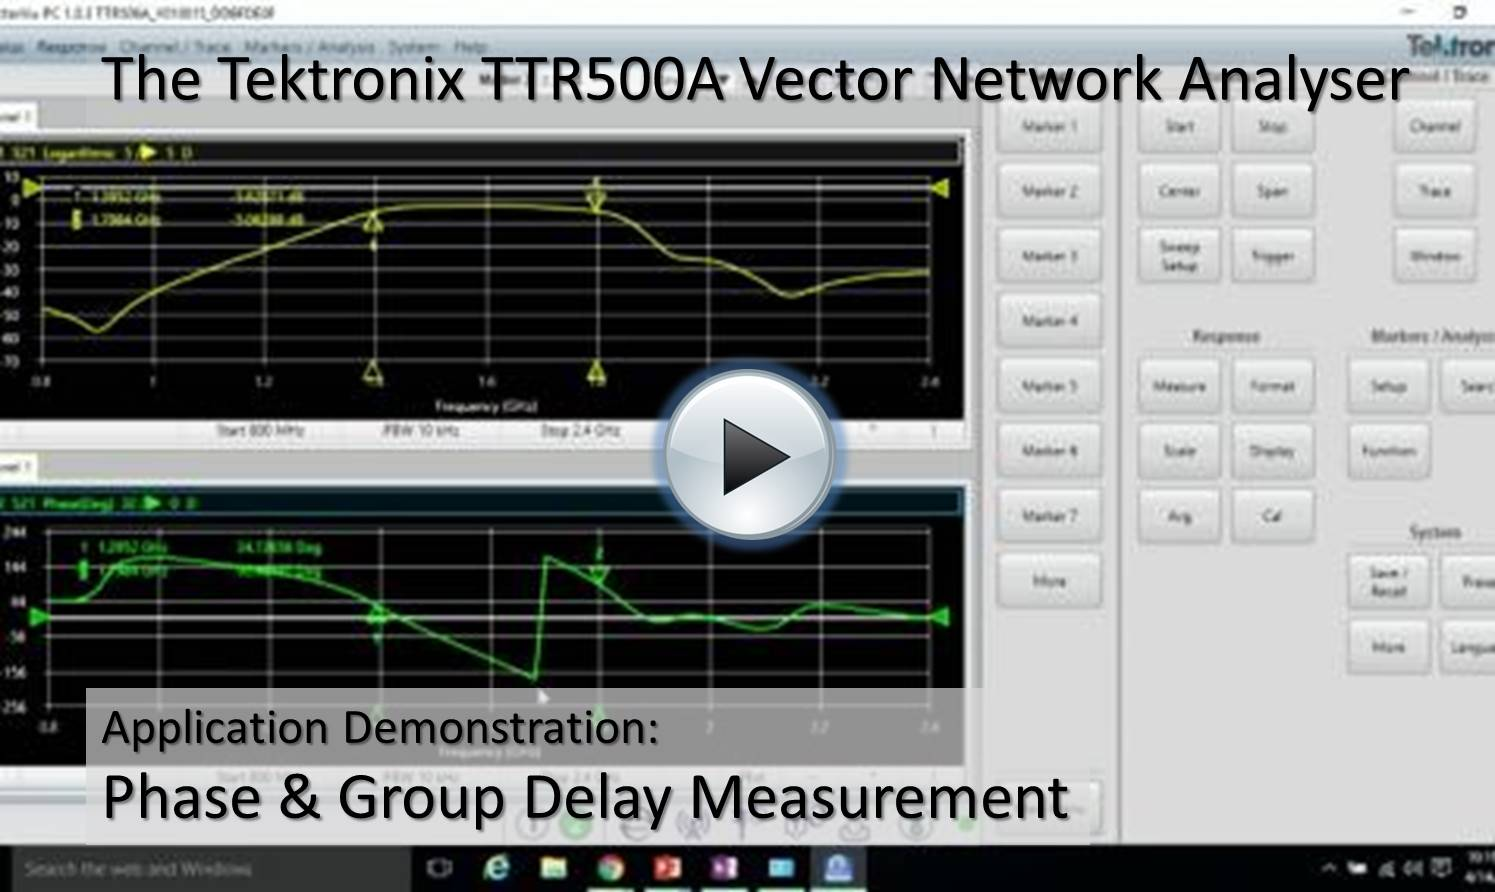 TTR500A_Apps_Demo_Phse_&_Group_Delay_Measurement_thumb